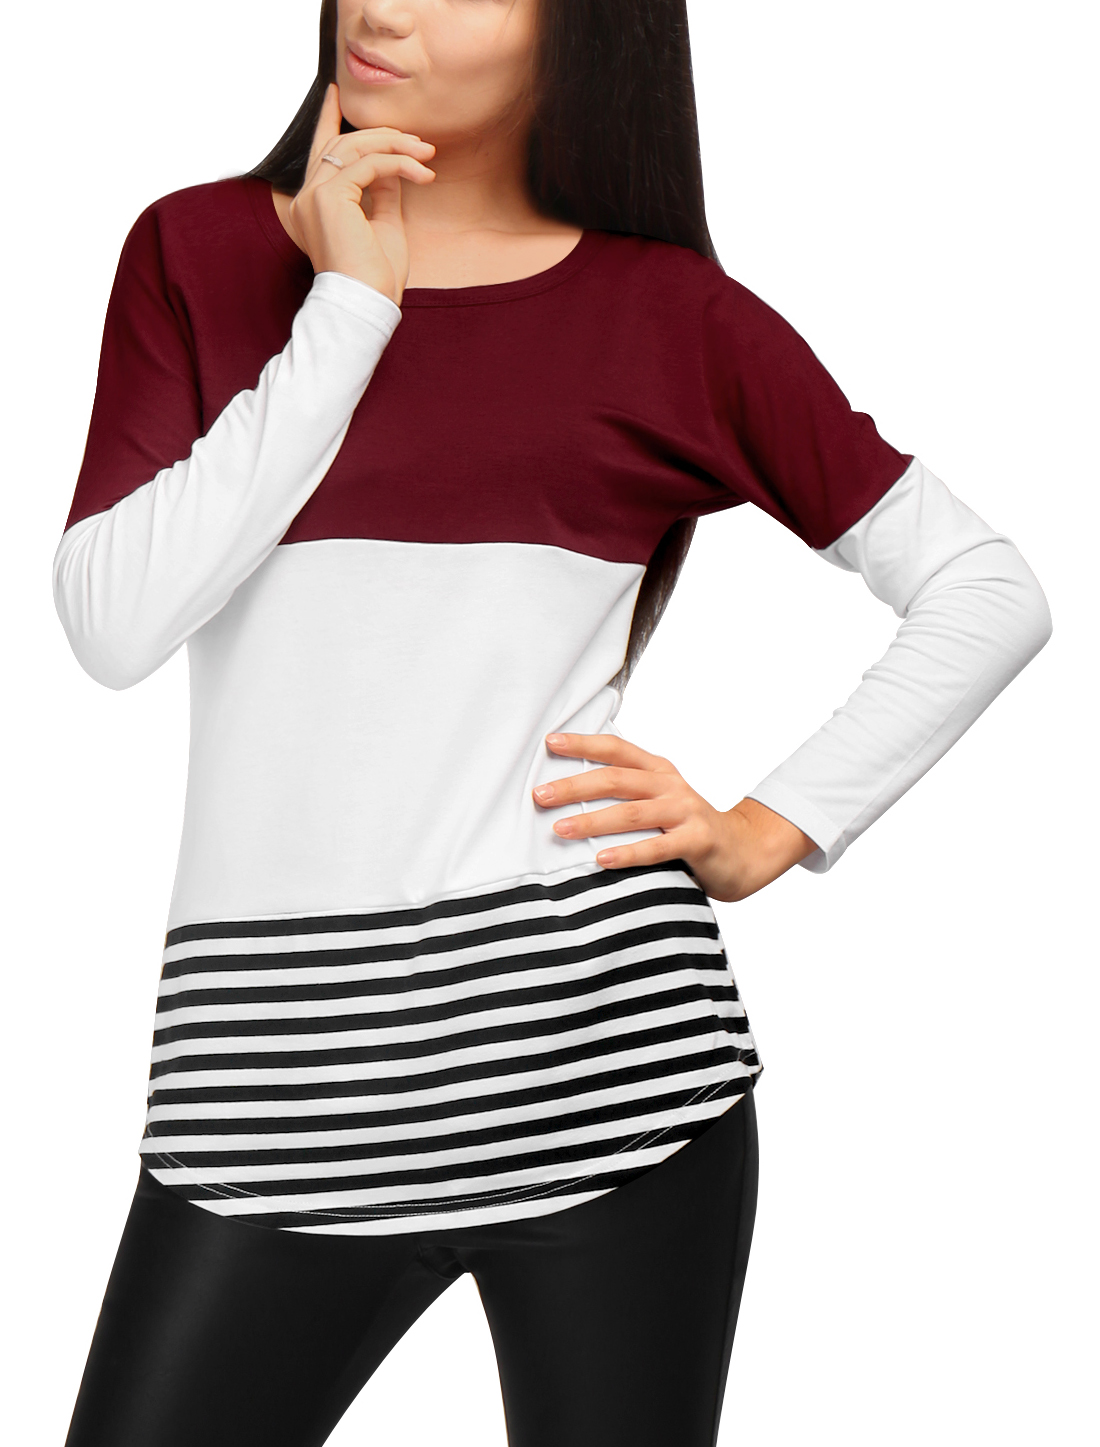 Women's Stripes Color Block Curved Hem Paneled Tunic Shirt Red XS